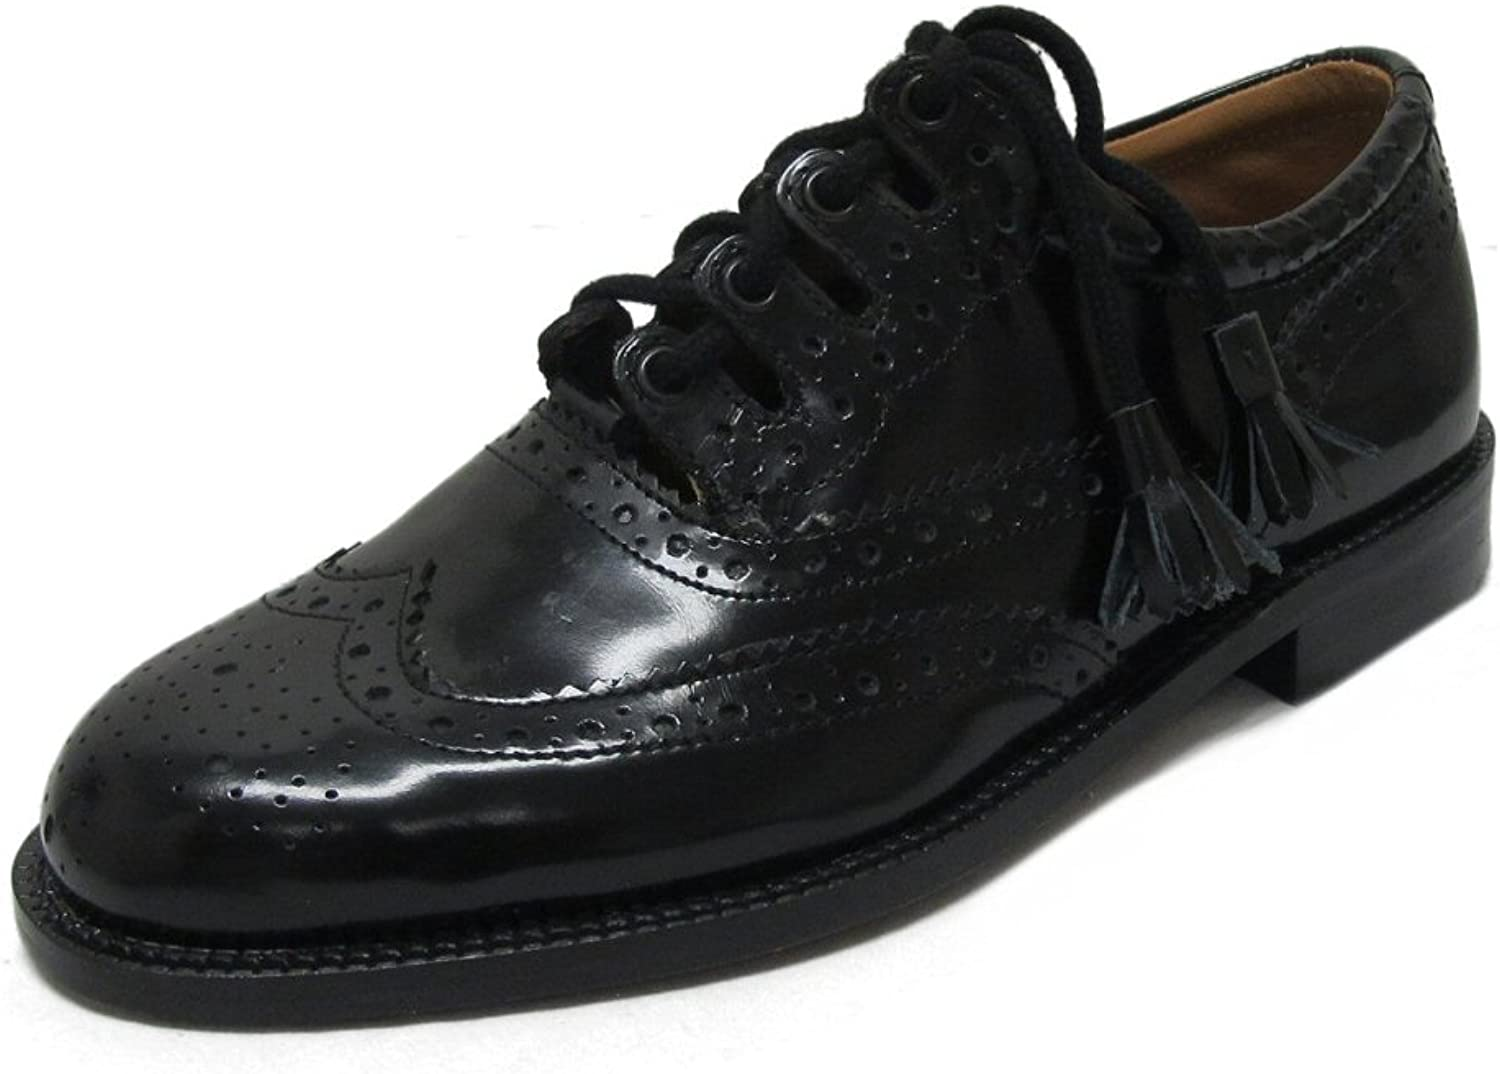 Thistle Brand Mens Leather Ghillie Brogue Kilt shoes